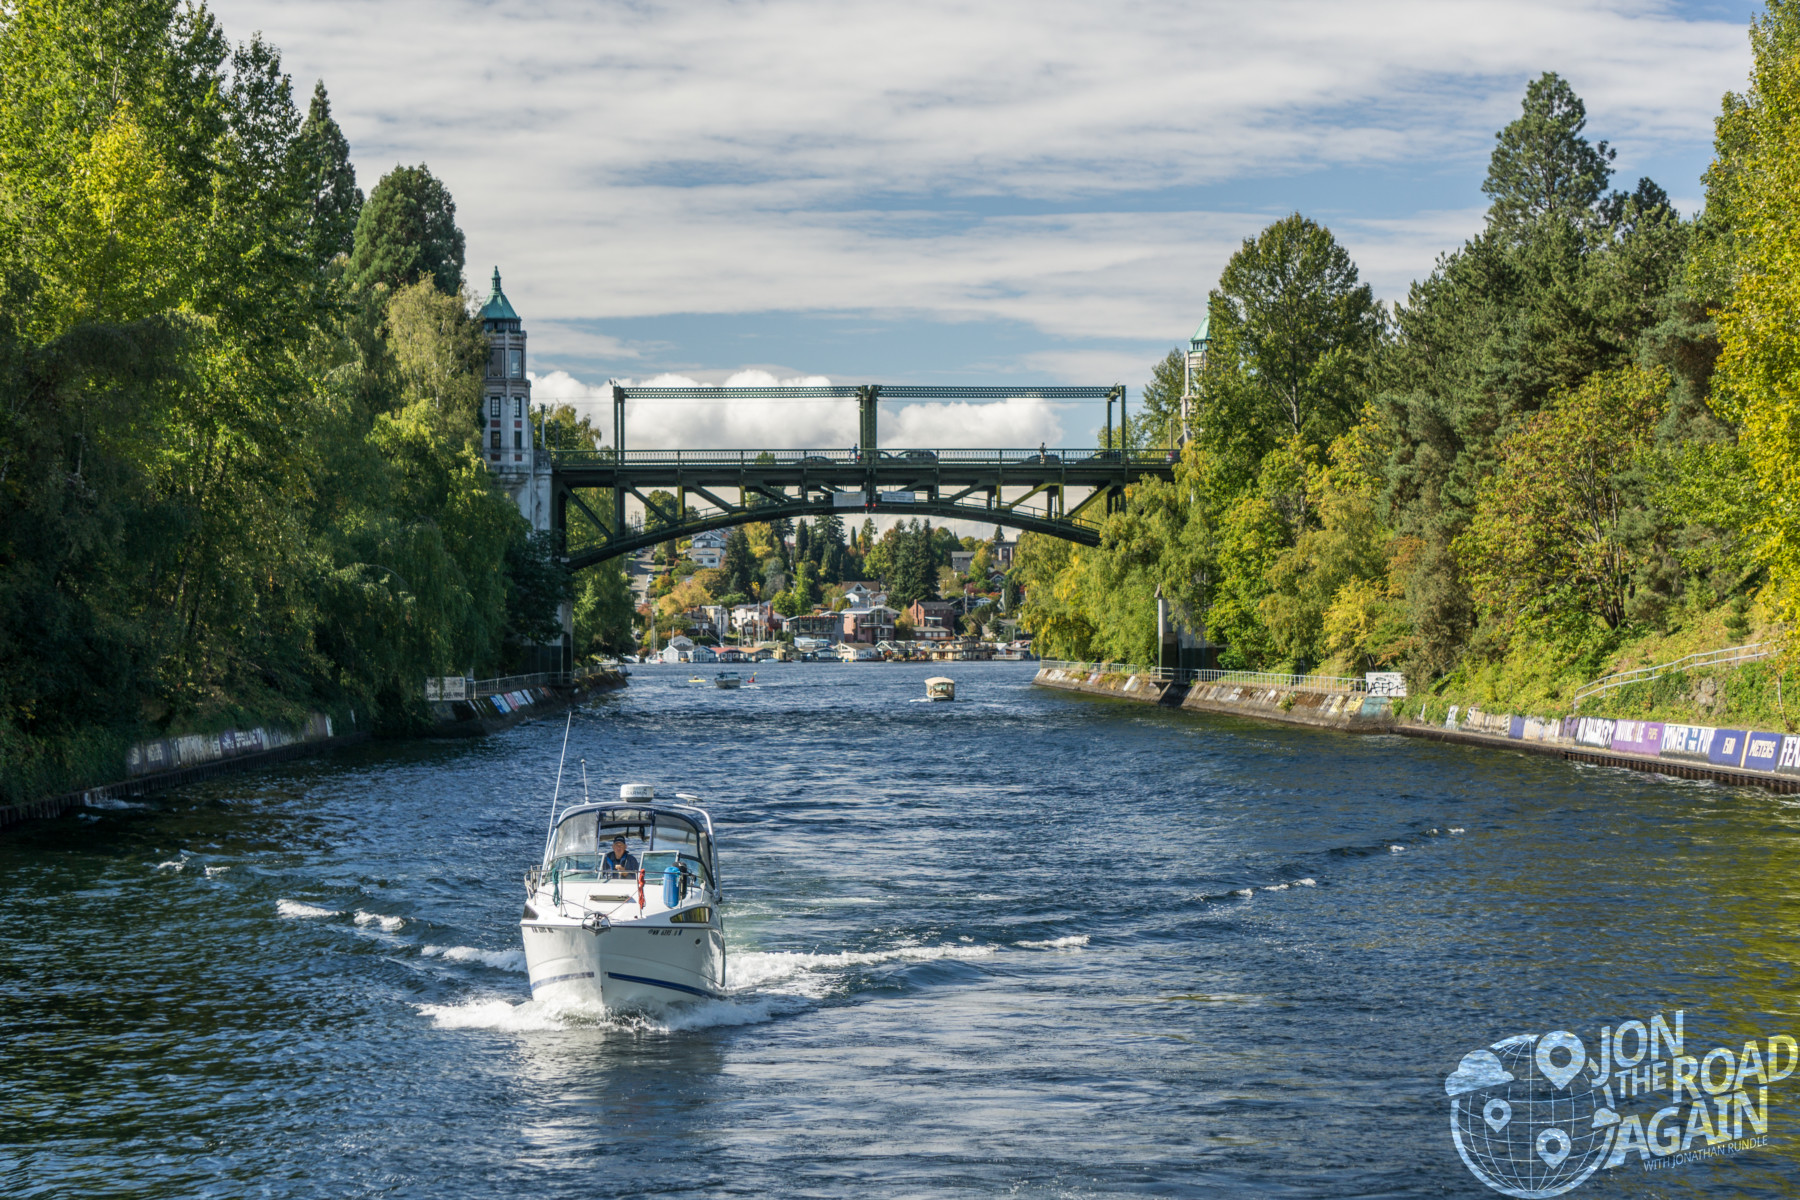 University bridge and montlake cut in Seattle